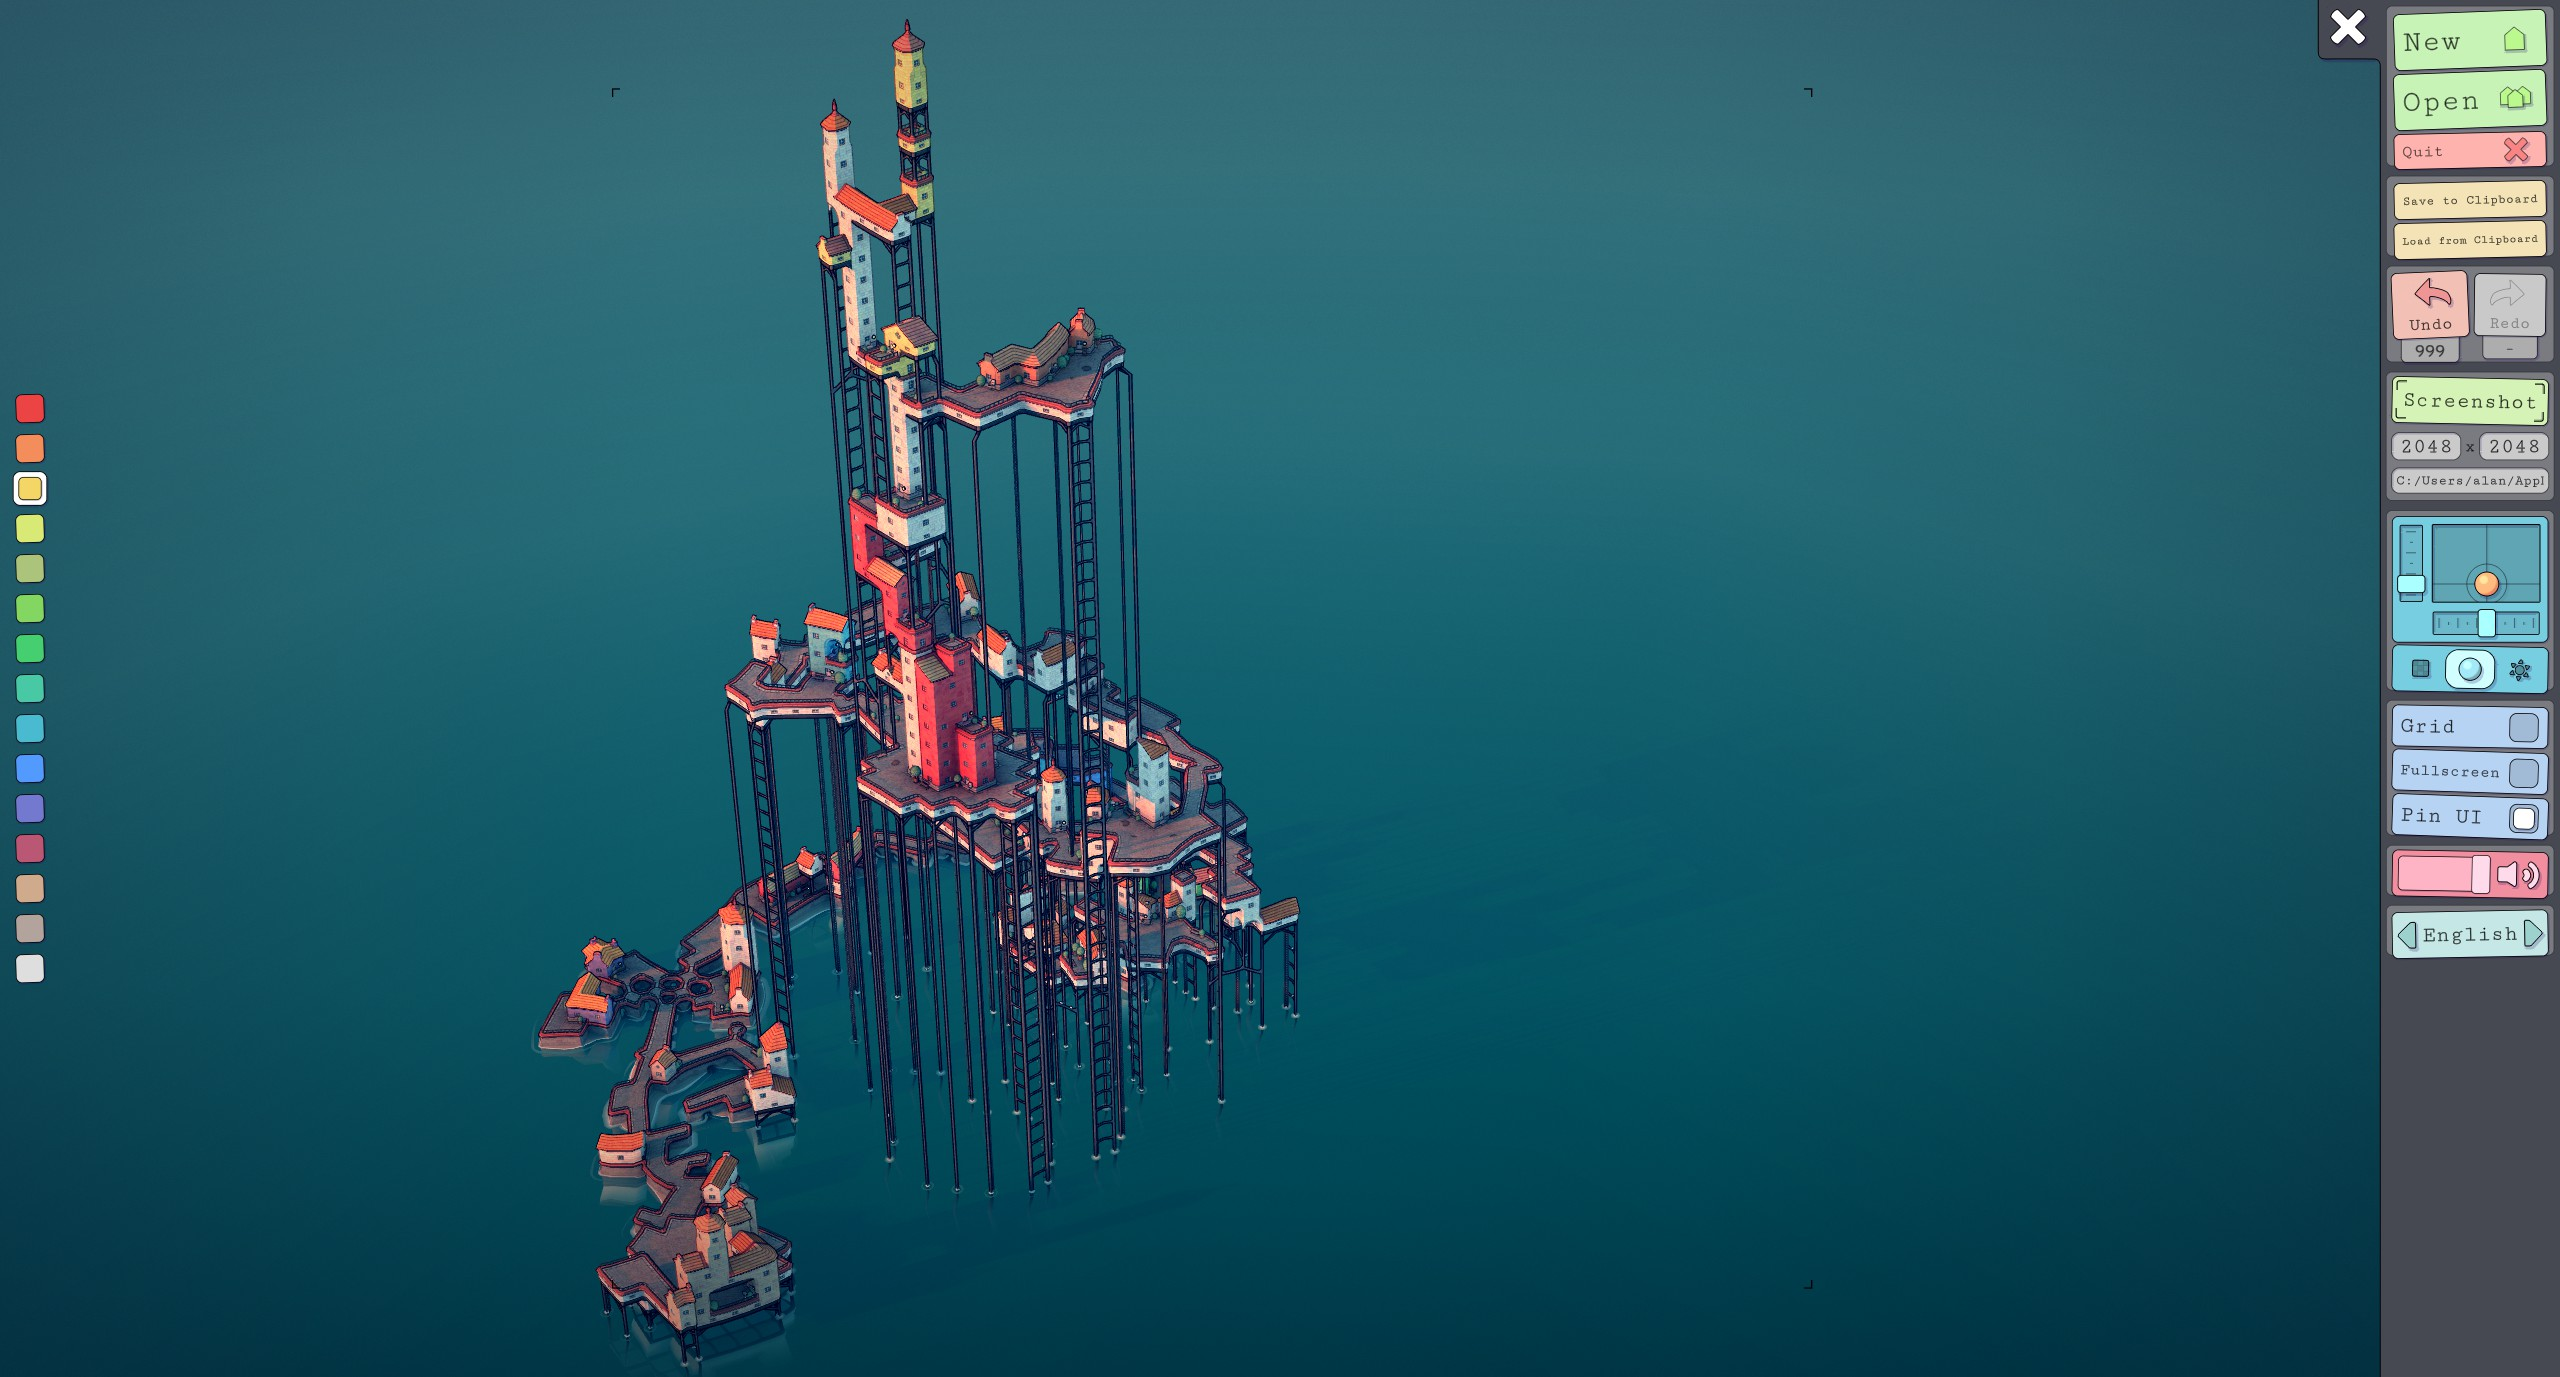 a townscaper screenshot with many platforms and tall support struts building a high tower